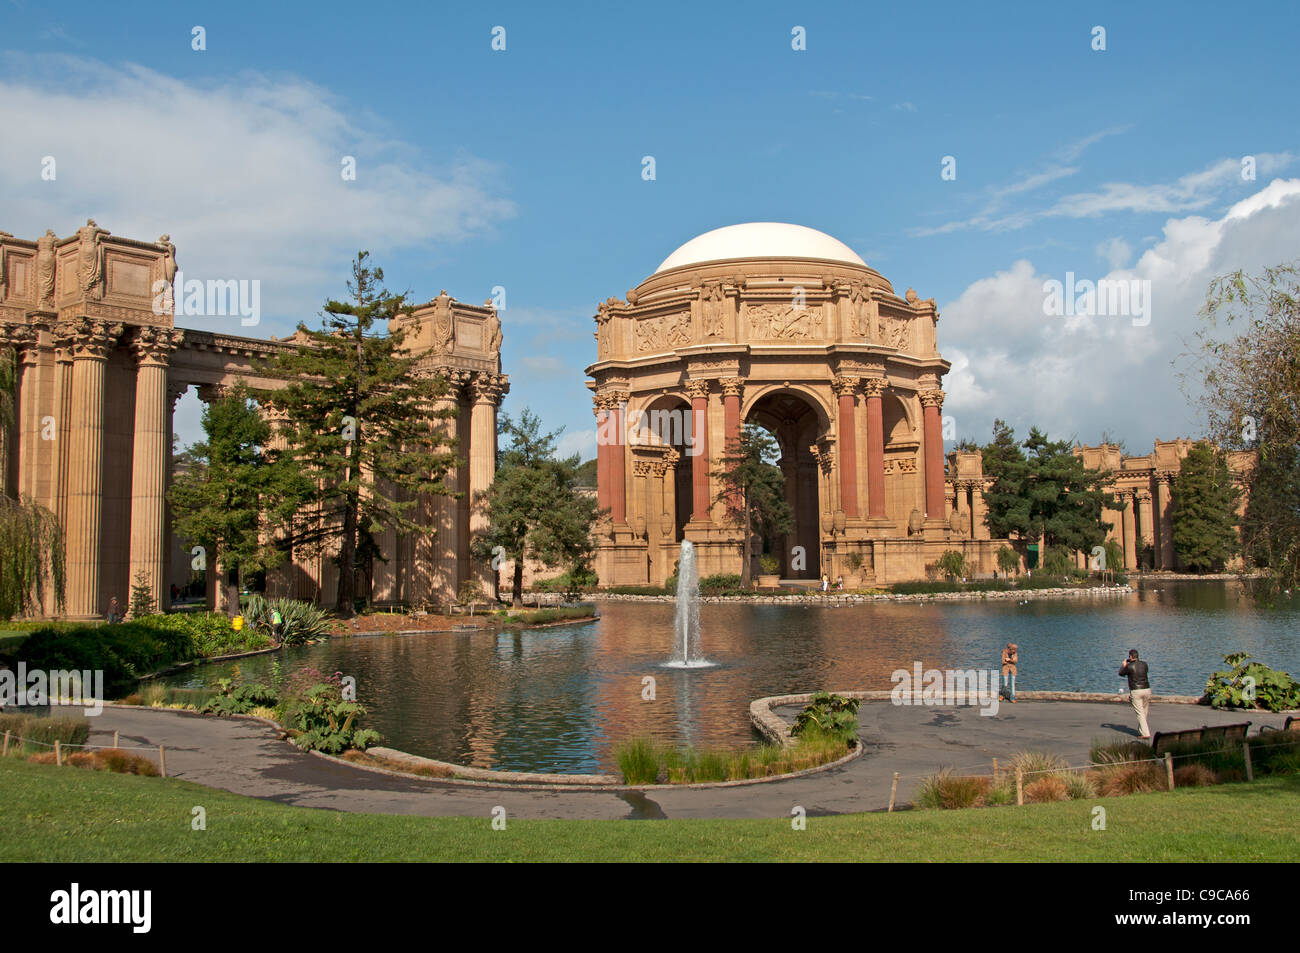 San francisco palace of fine arts museum california usa for San francisco museum of art